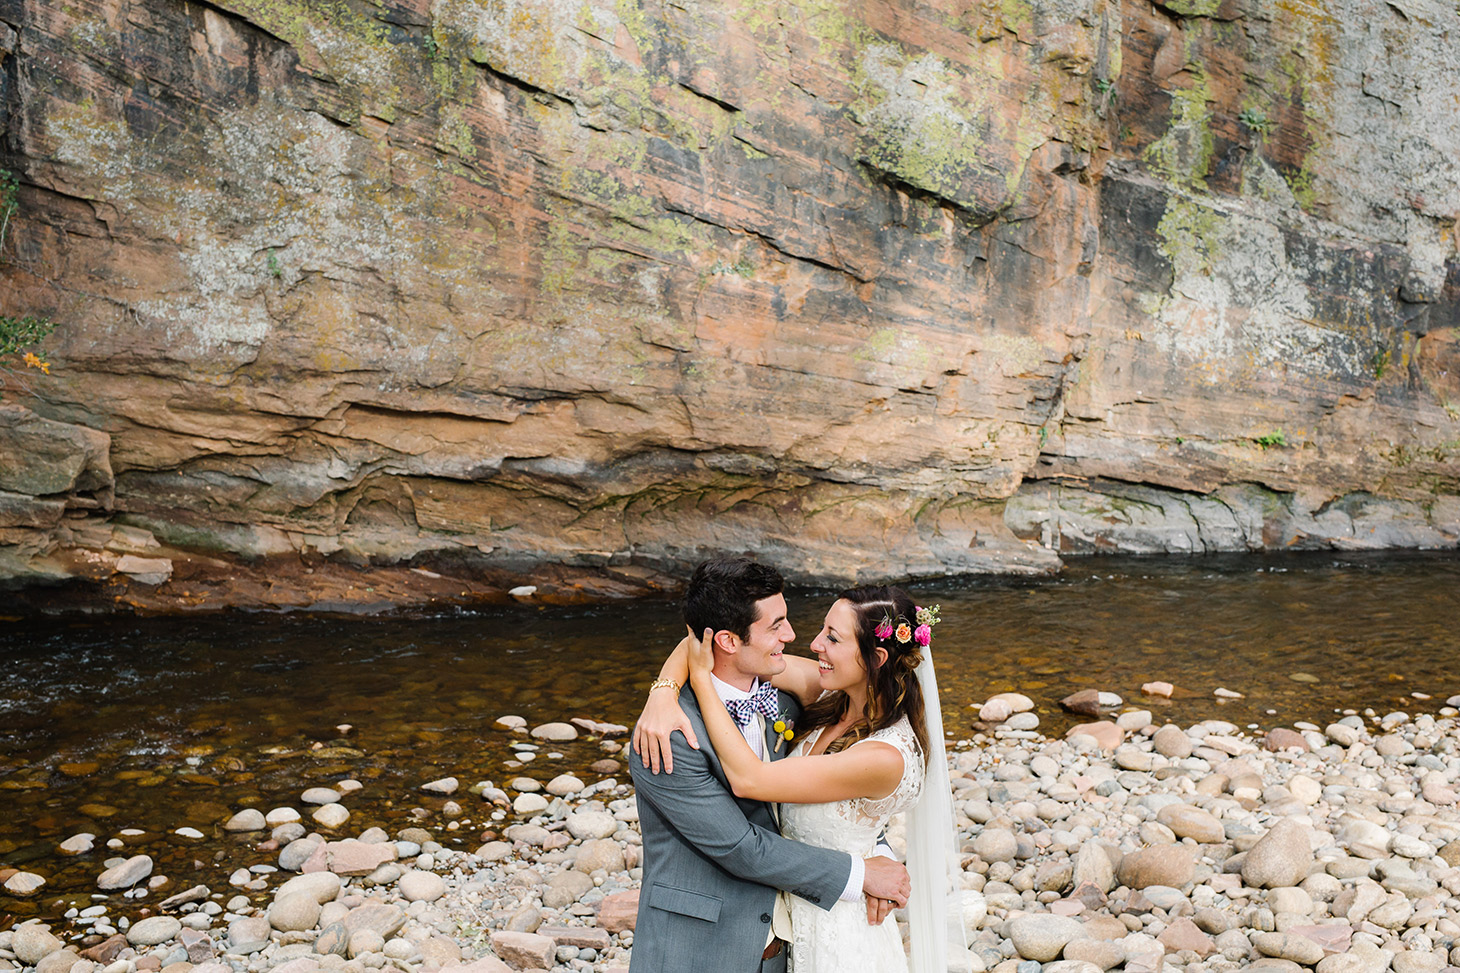 Megan-Newton-Photography-Best-Wedding-Photos-2015-061